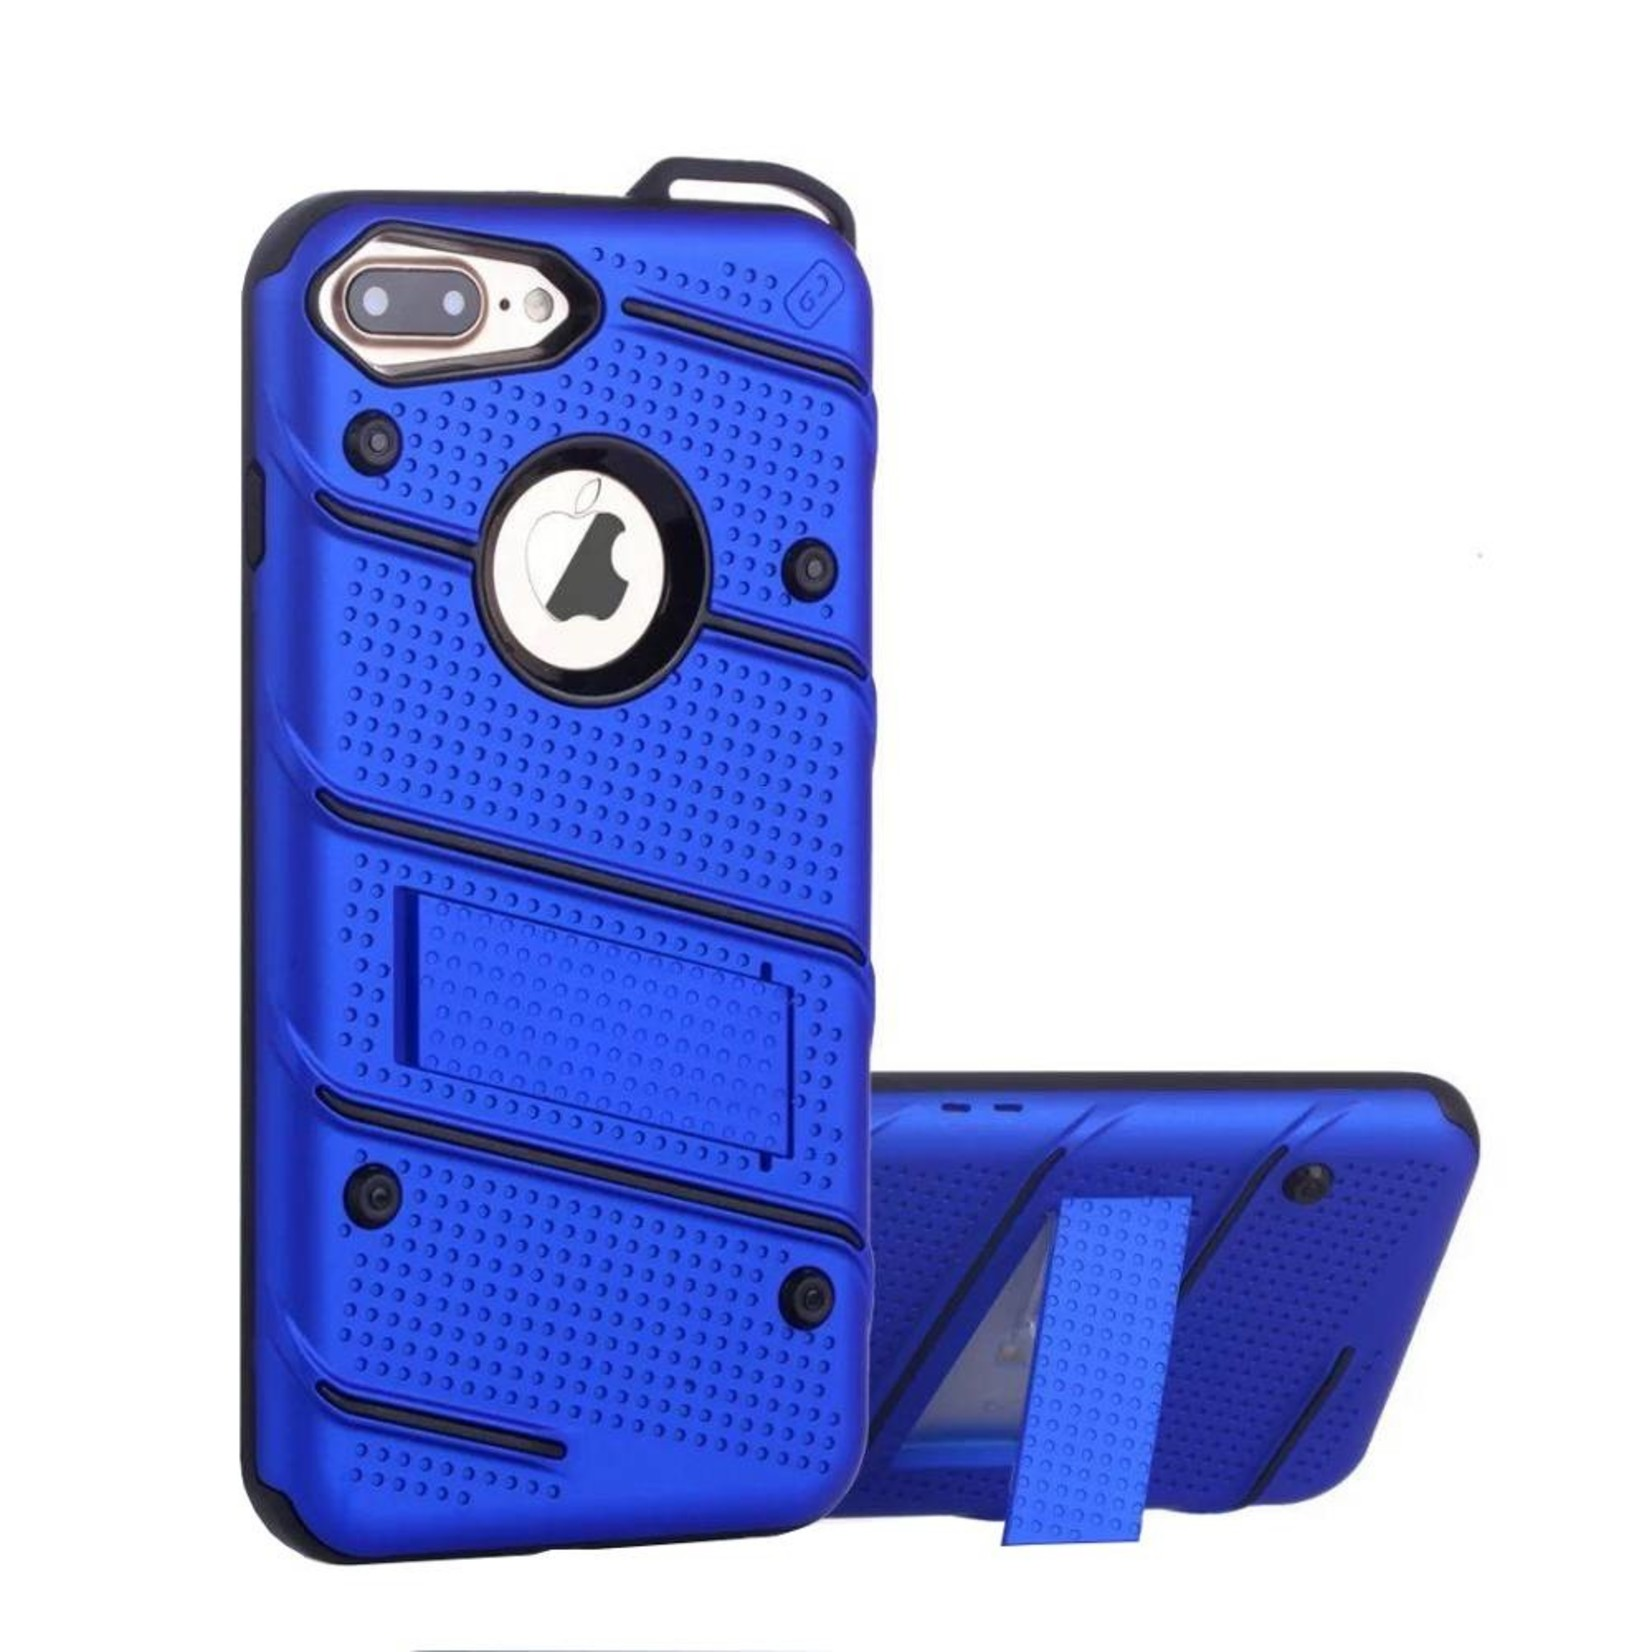 Colorfone Hoesje Armour Stand iPhone 7 Plus Blauw